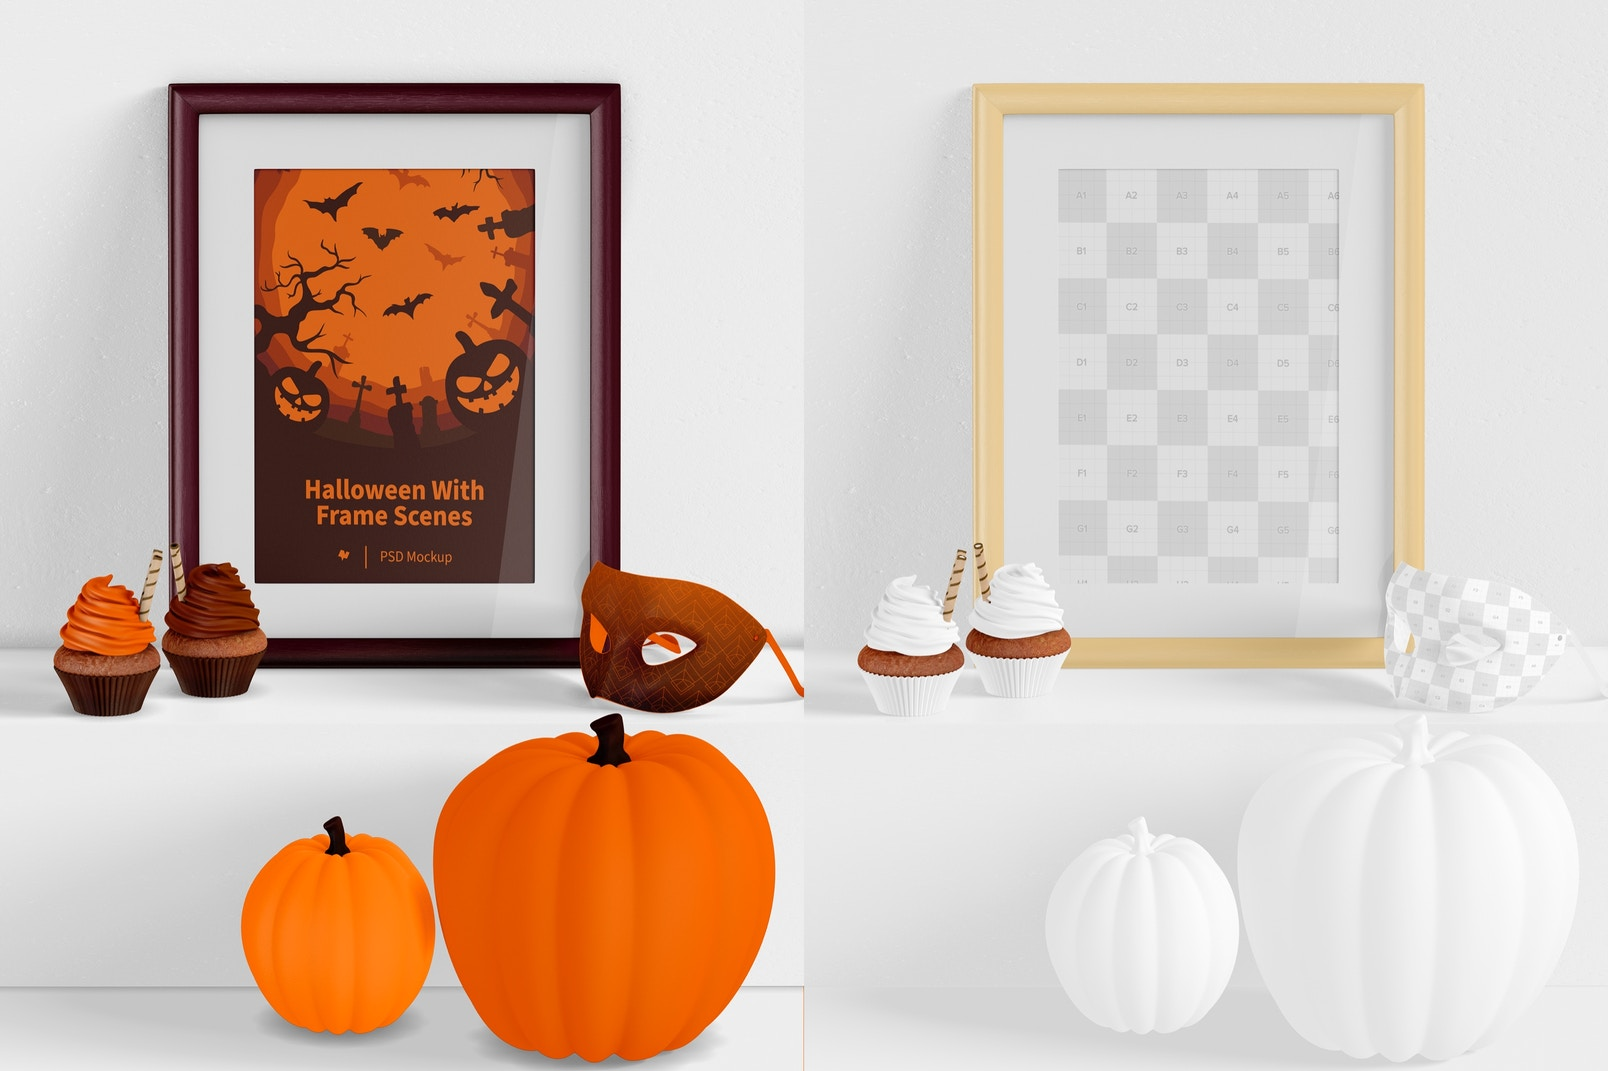 Halloween with Frame Scene Mockup, on Surface